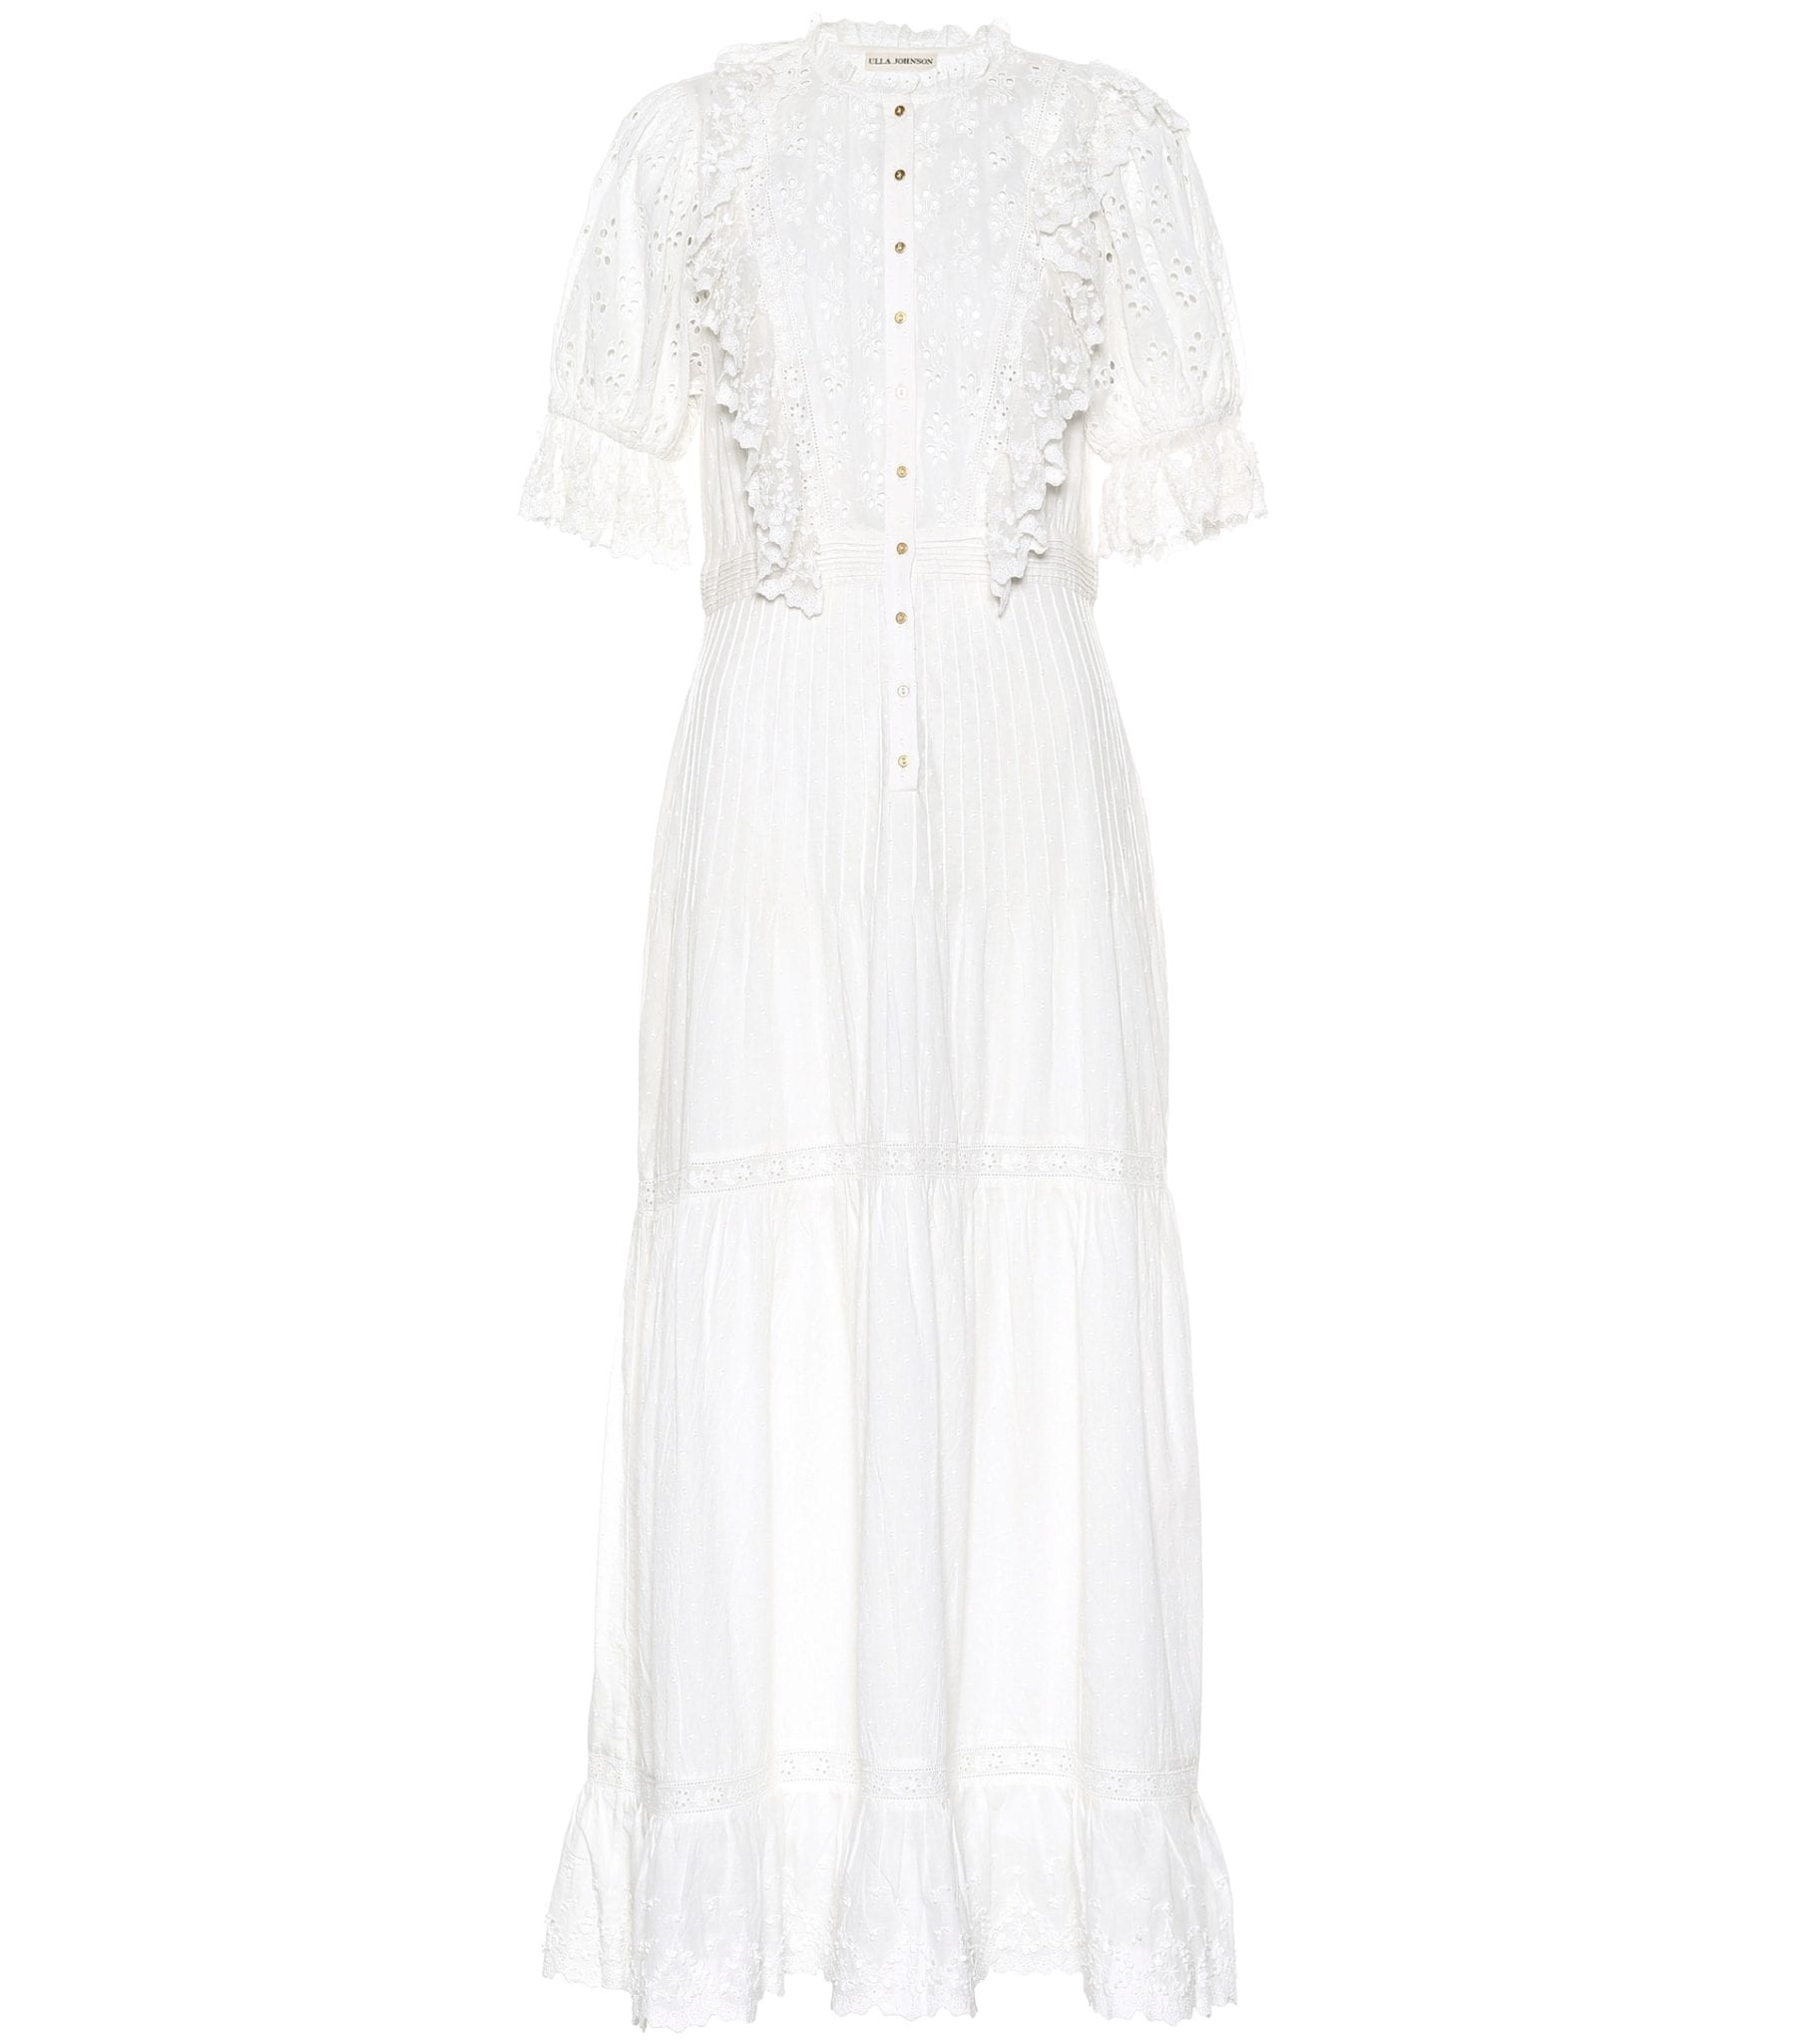 ULLA JOHNSON Halley Cotton & Broderie Anglaise White Dress